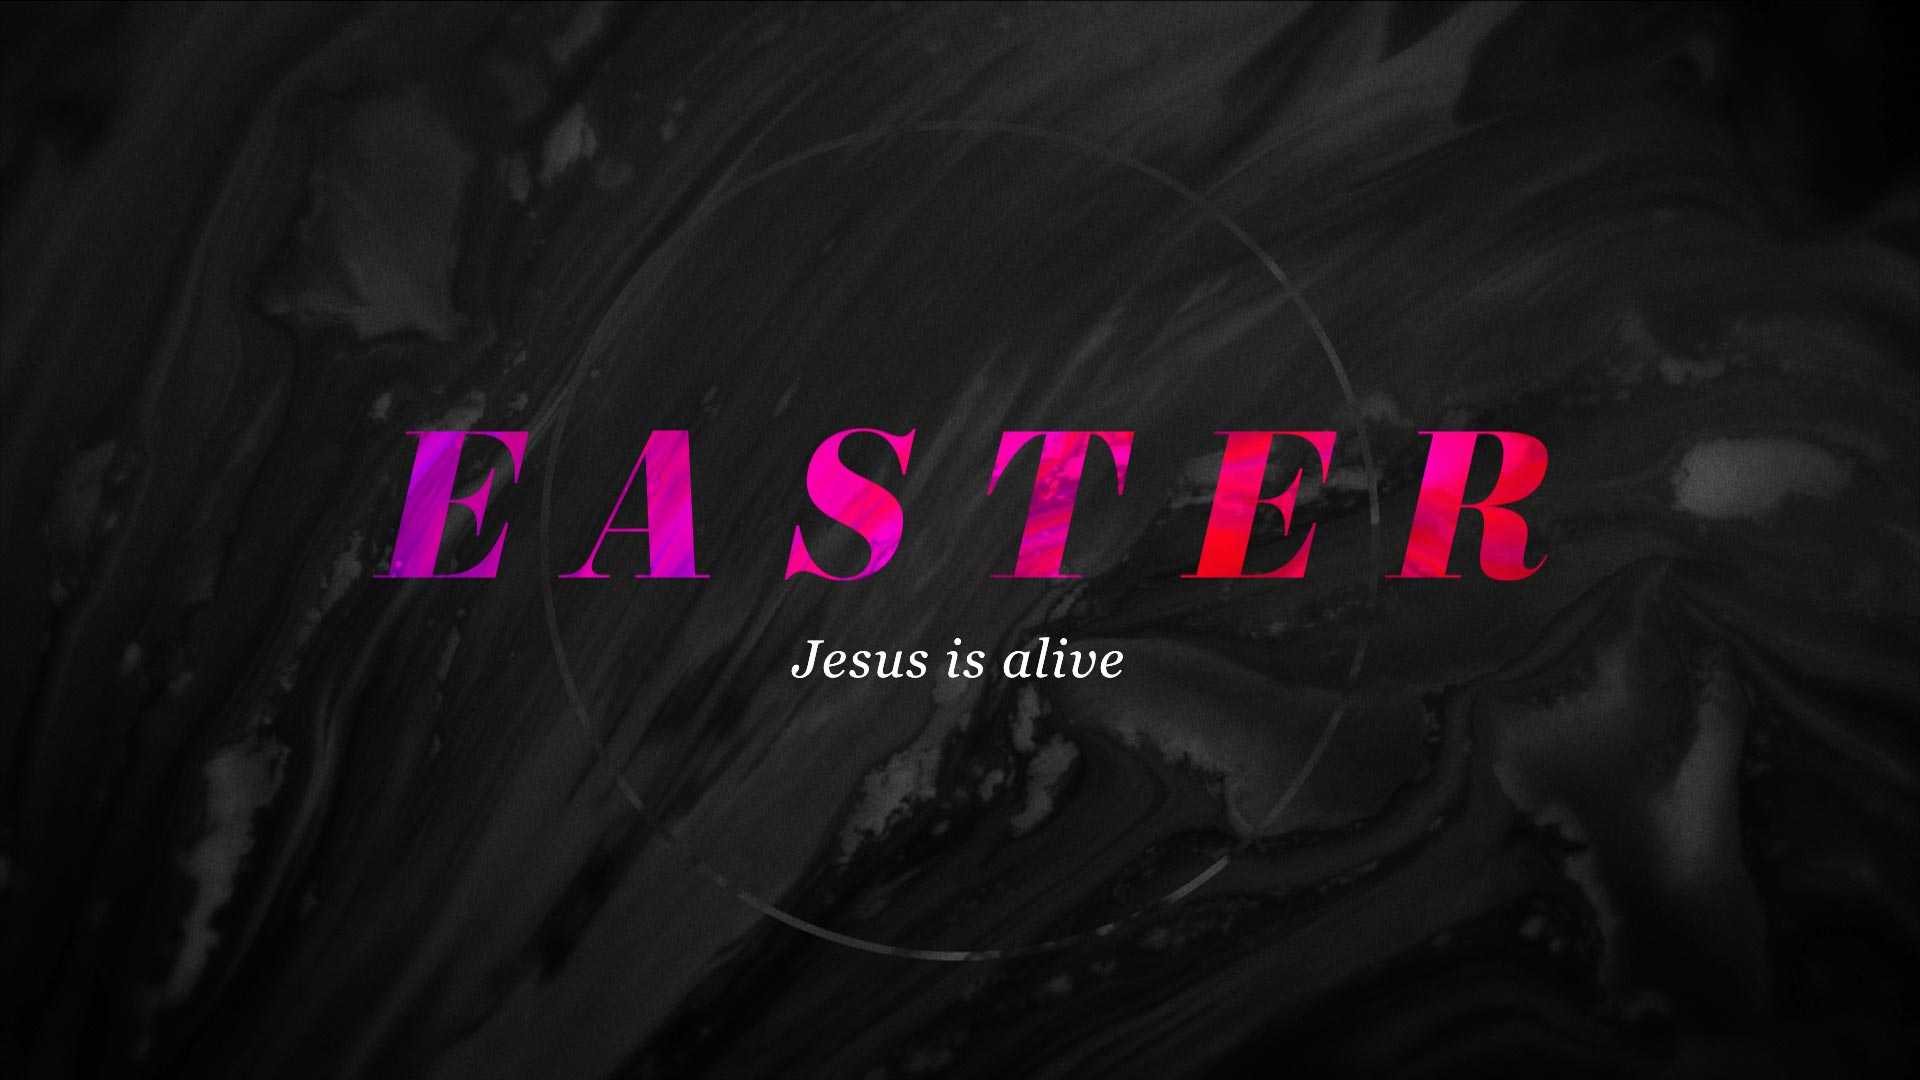 free marble flow propresenter template cmg church motion graphics